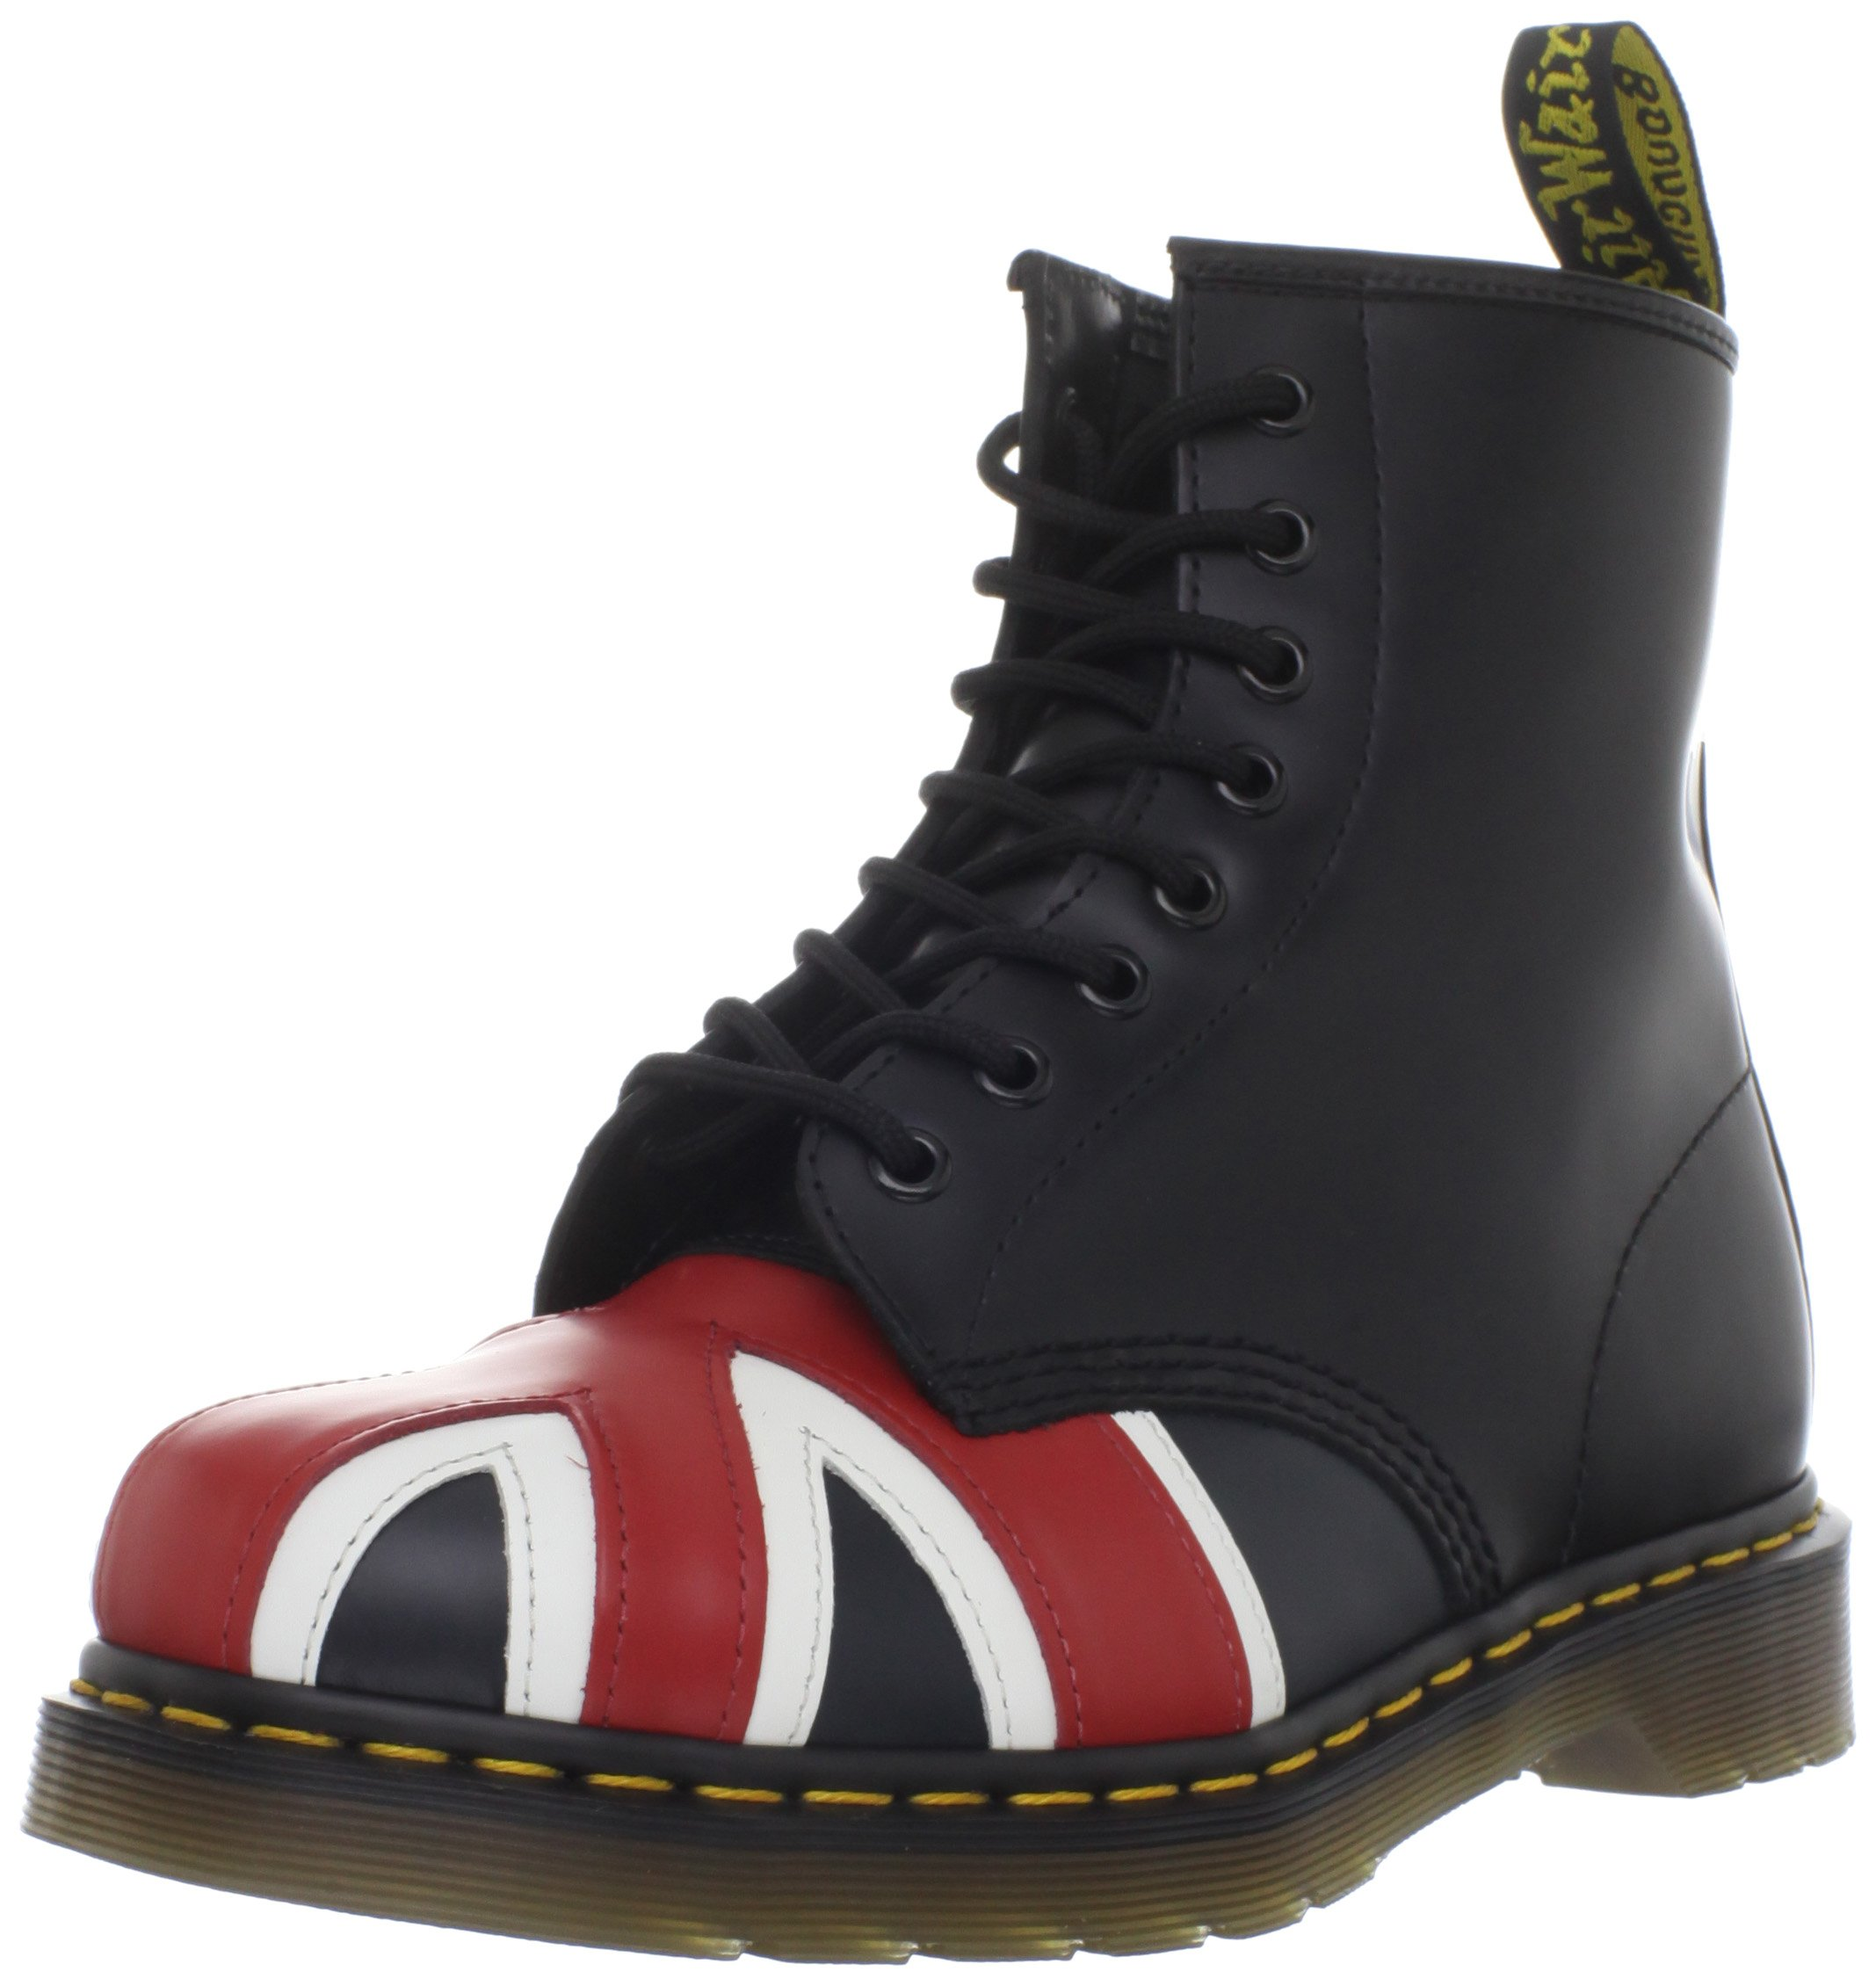 Dr. Martens 1460 Originals Union Jack 8 Eye Lace Up Boot,Black Smooth Leather,9 UK (10 M US Mens / 11 M US Womens) by Dr. Martens